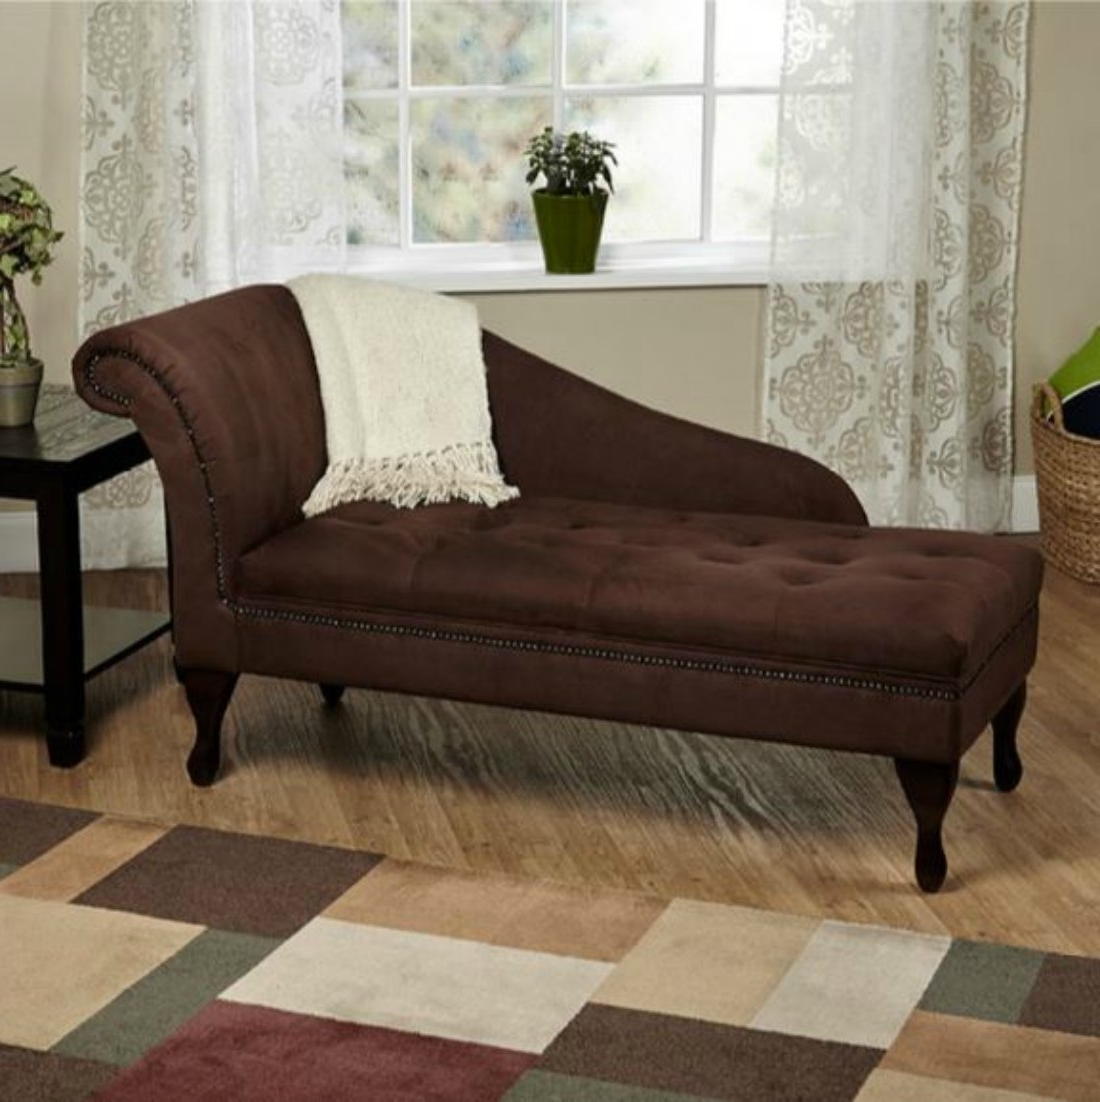 Chaise Lounge Chairs With Storage Regarding Favorite Amazon: Modern Storage Chaise Lounge Chair – This Tufted (View 5 of 15)